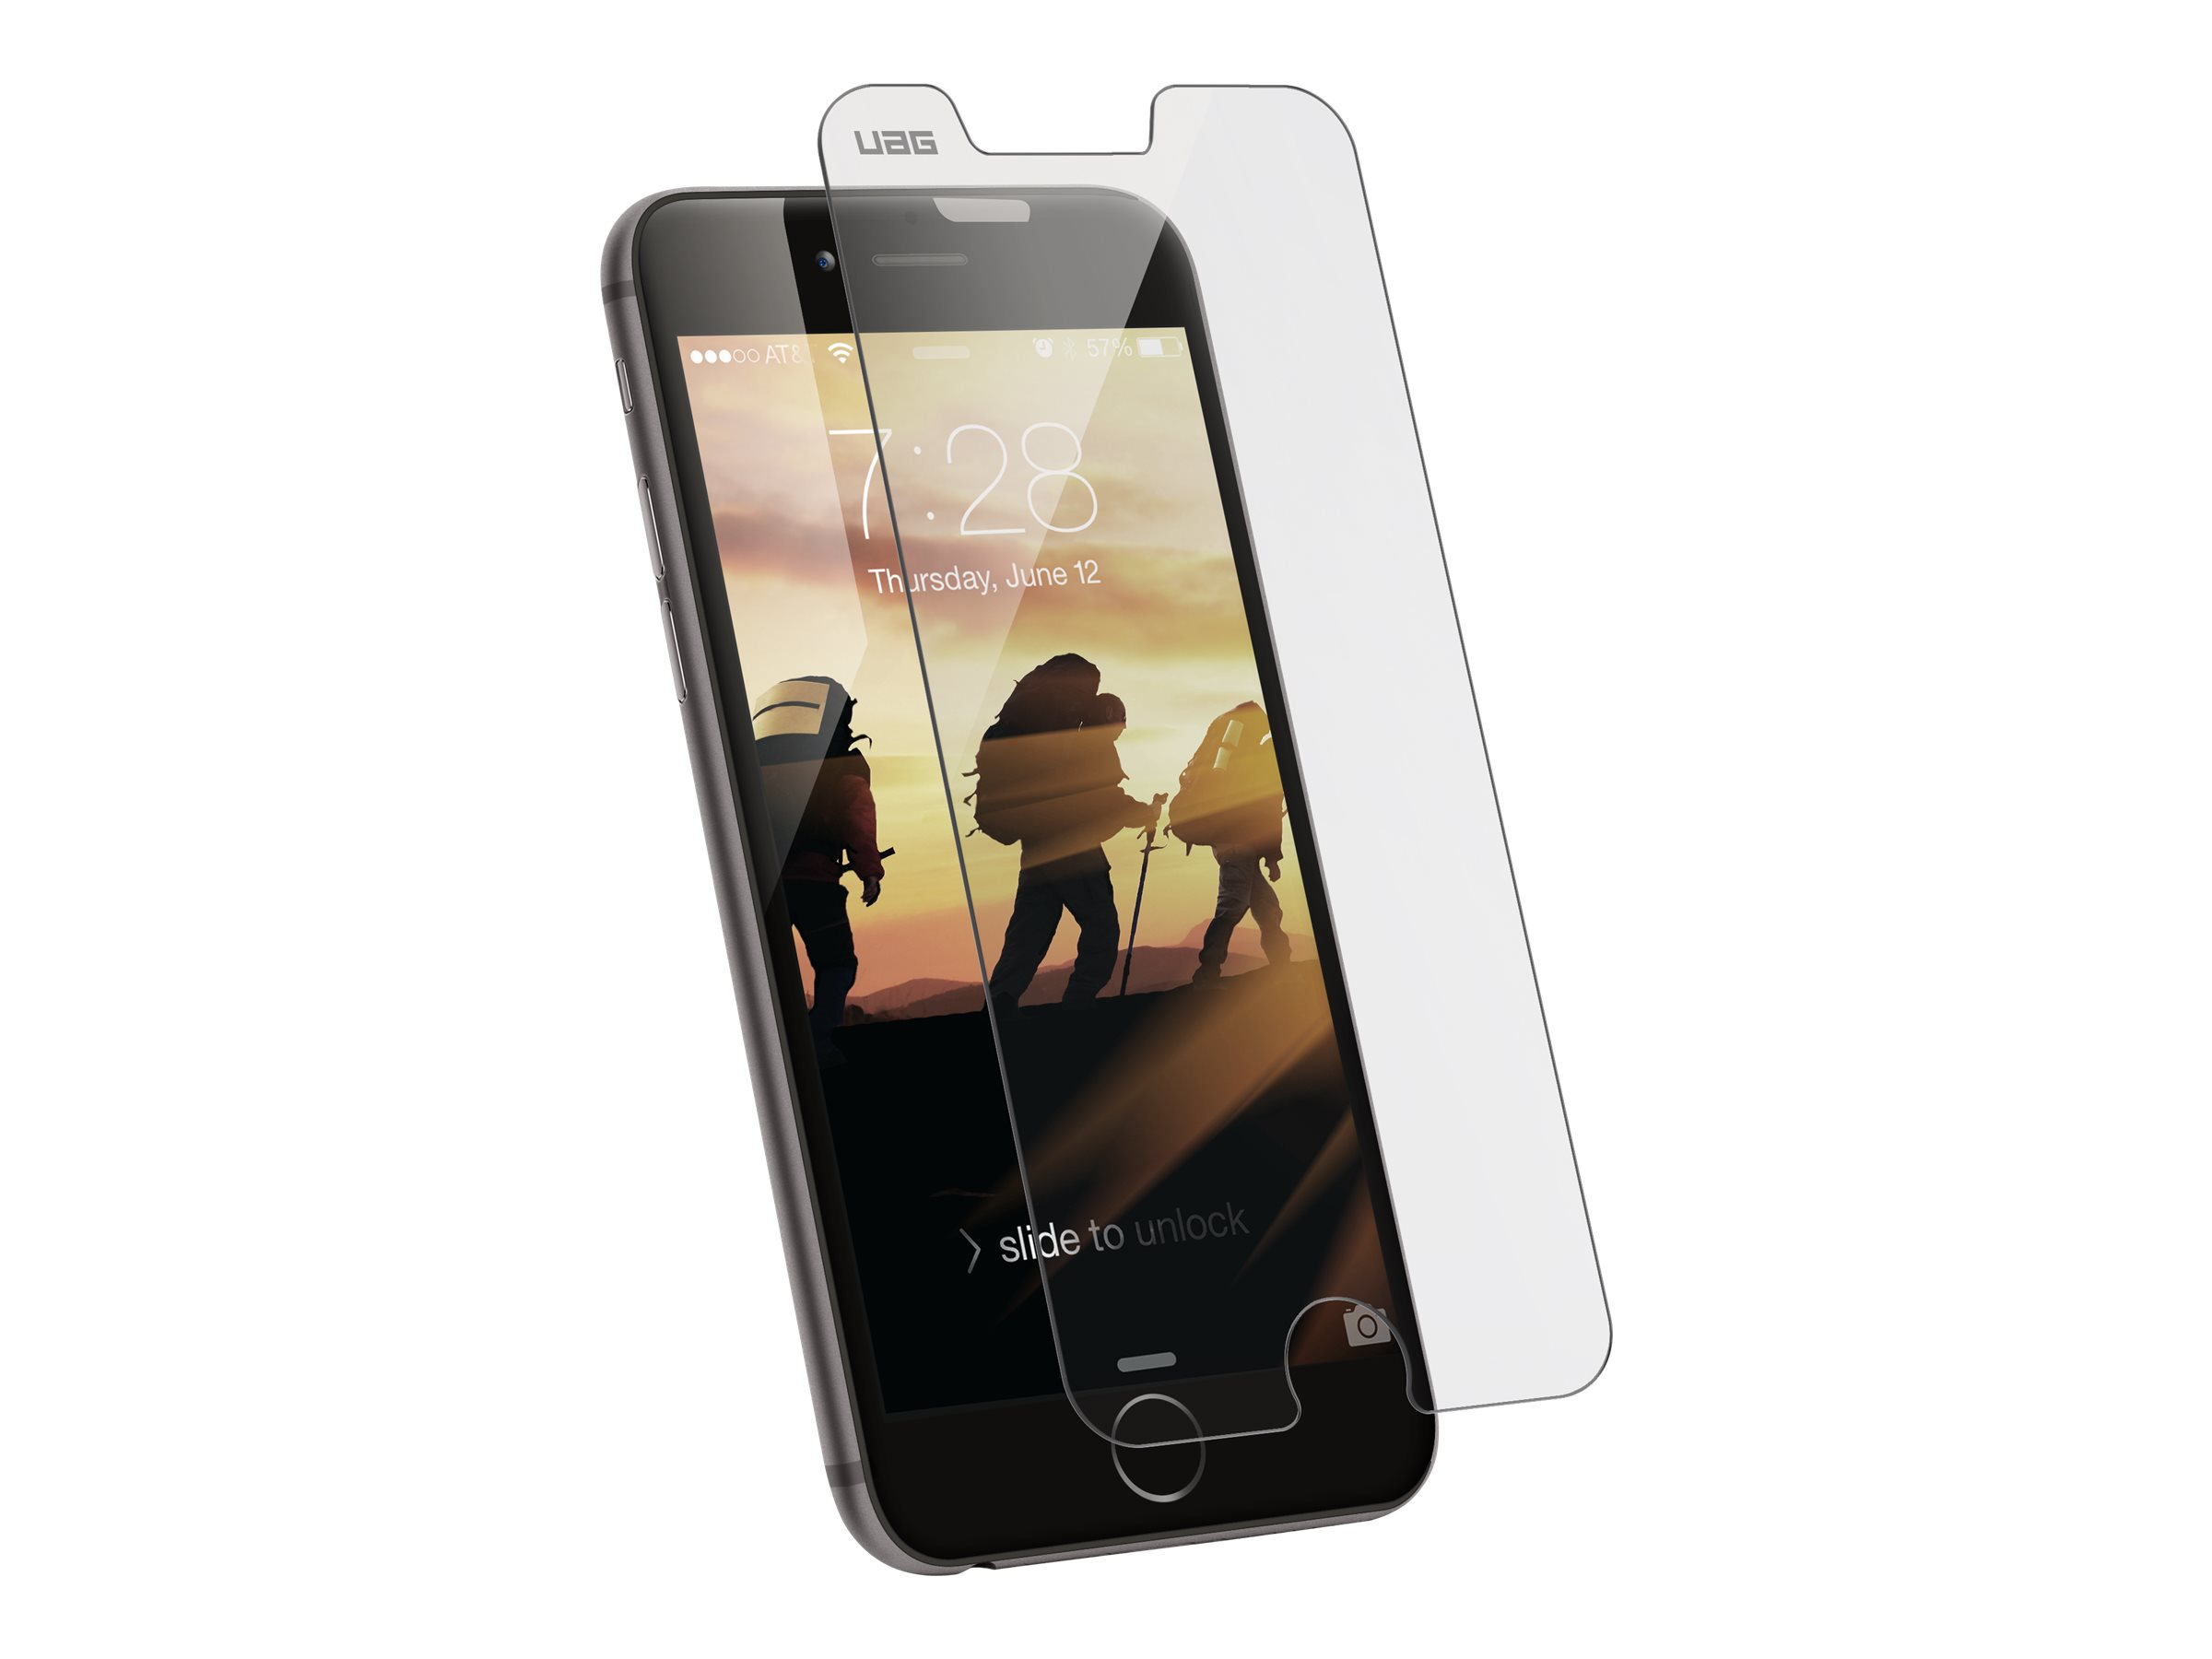 UAG Tempered Glass Screen Shield for iPhone 8 / 7 / 6s / 6 [4.7-inch screen] - screen protector for cellular phone